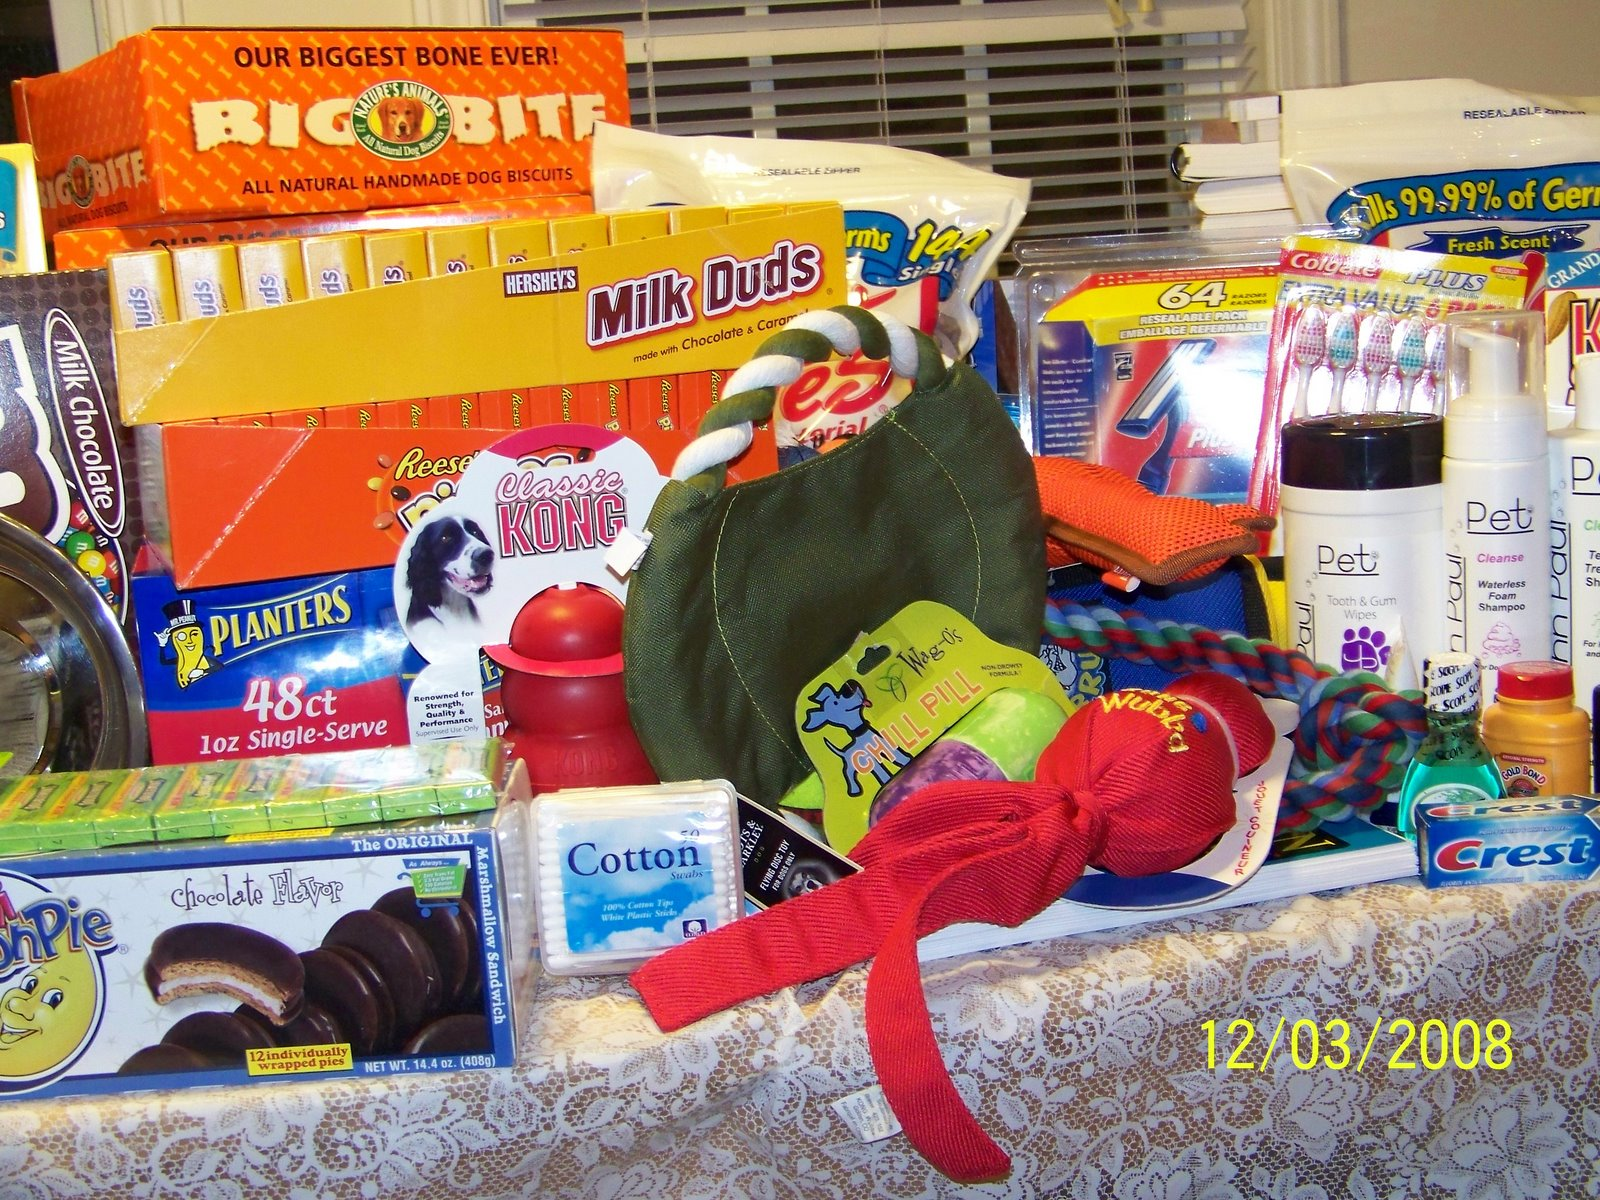 Items donated by Ms. Wilson